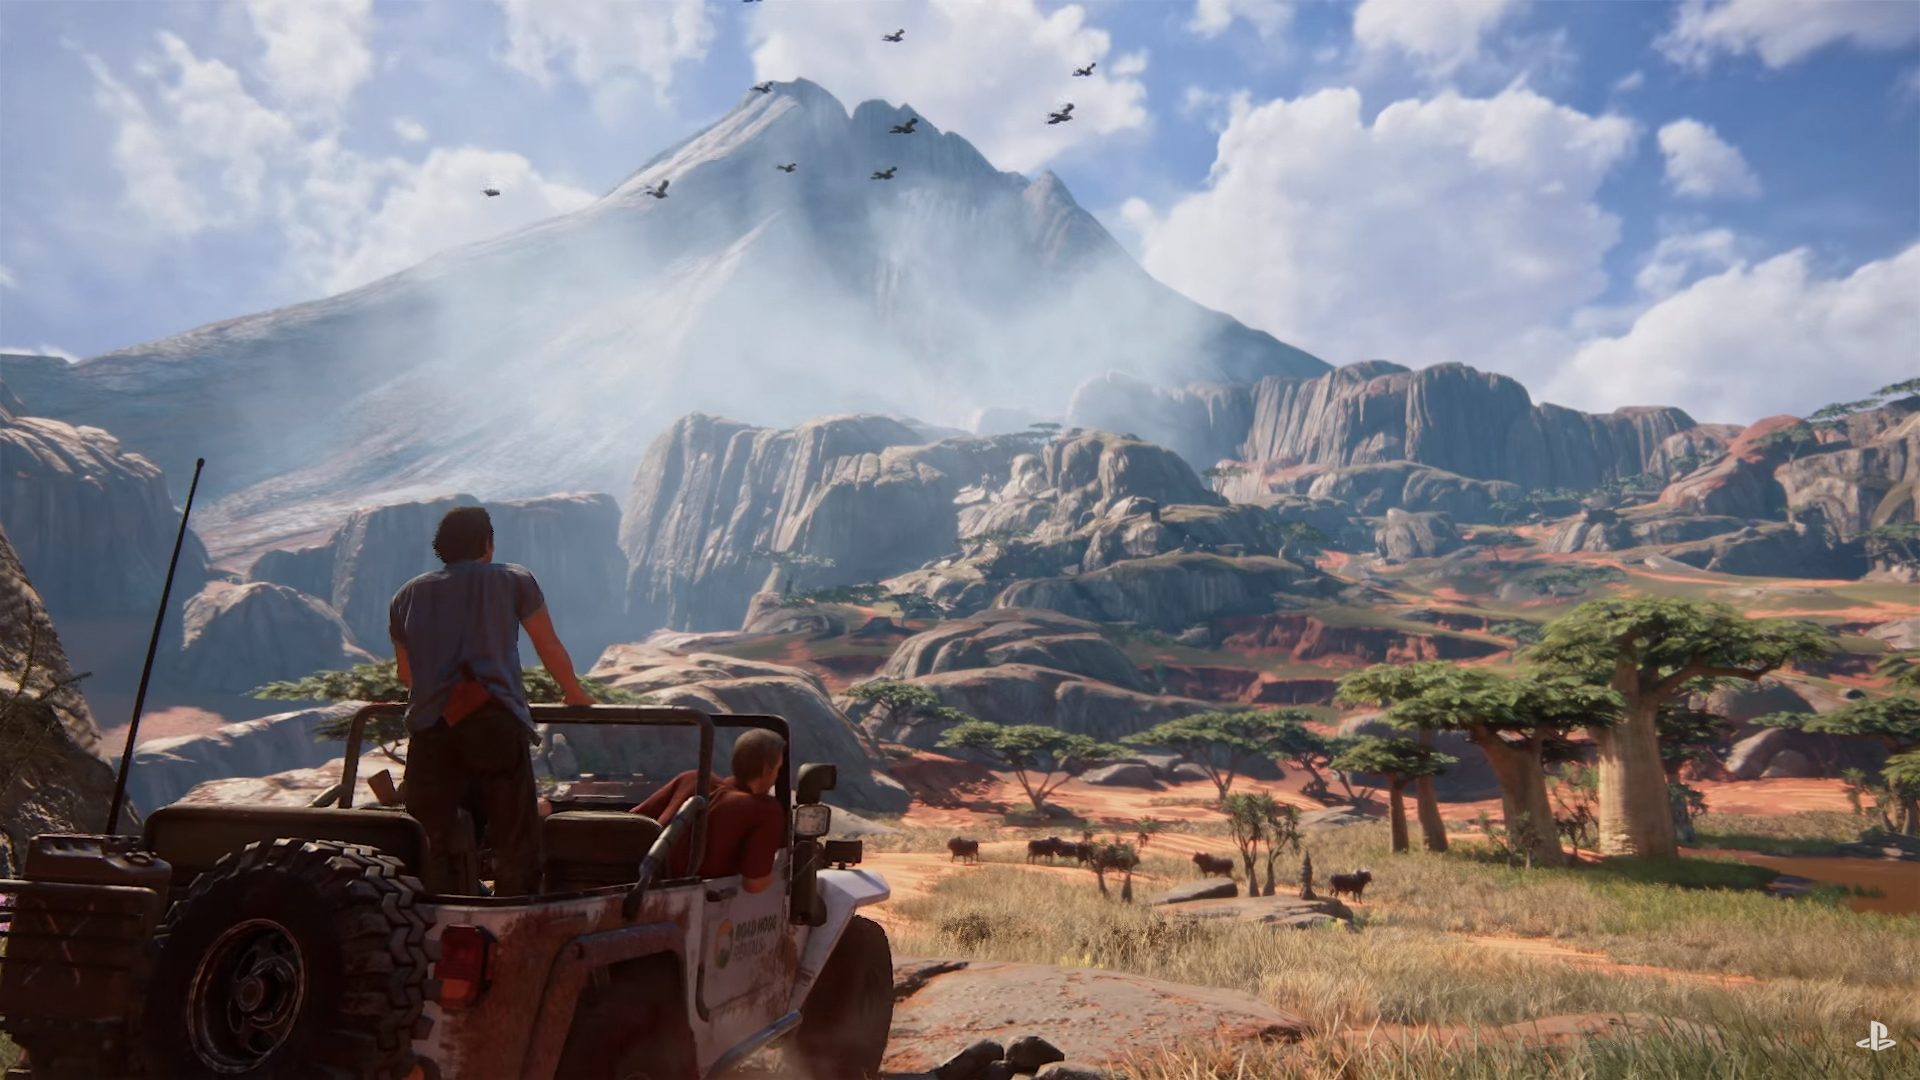 Uncharted 4 01 11 Classic Videogame Franchises And Their Incredible Evolutions